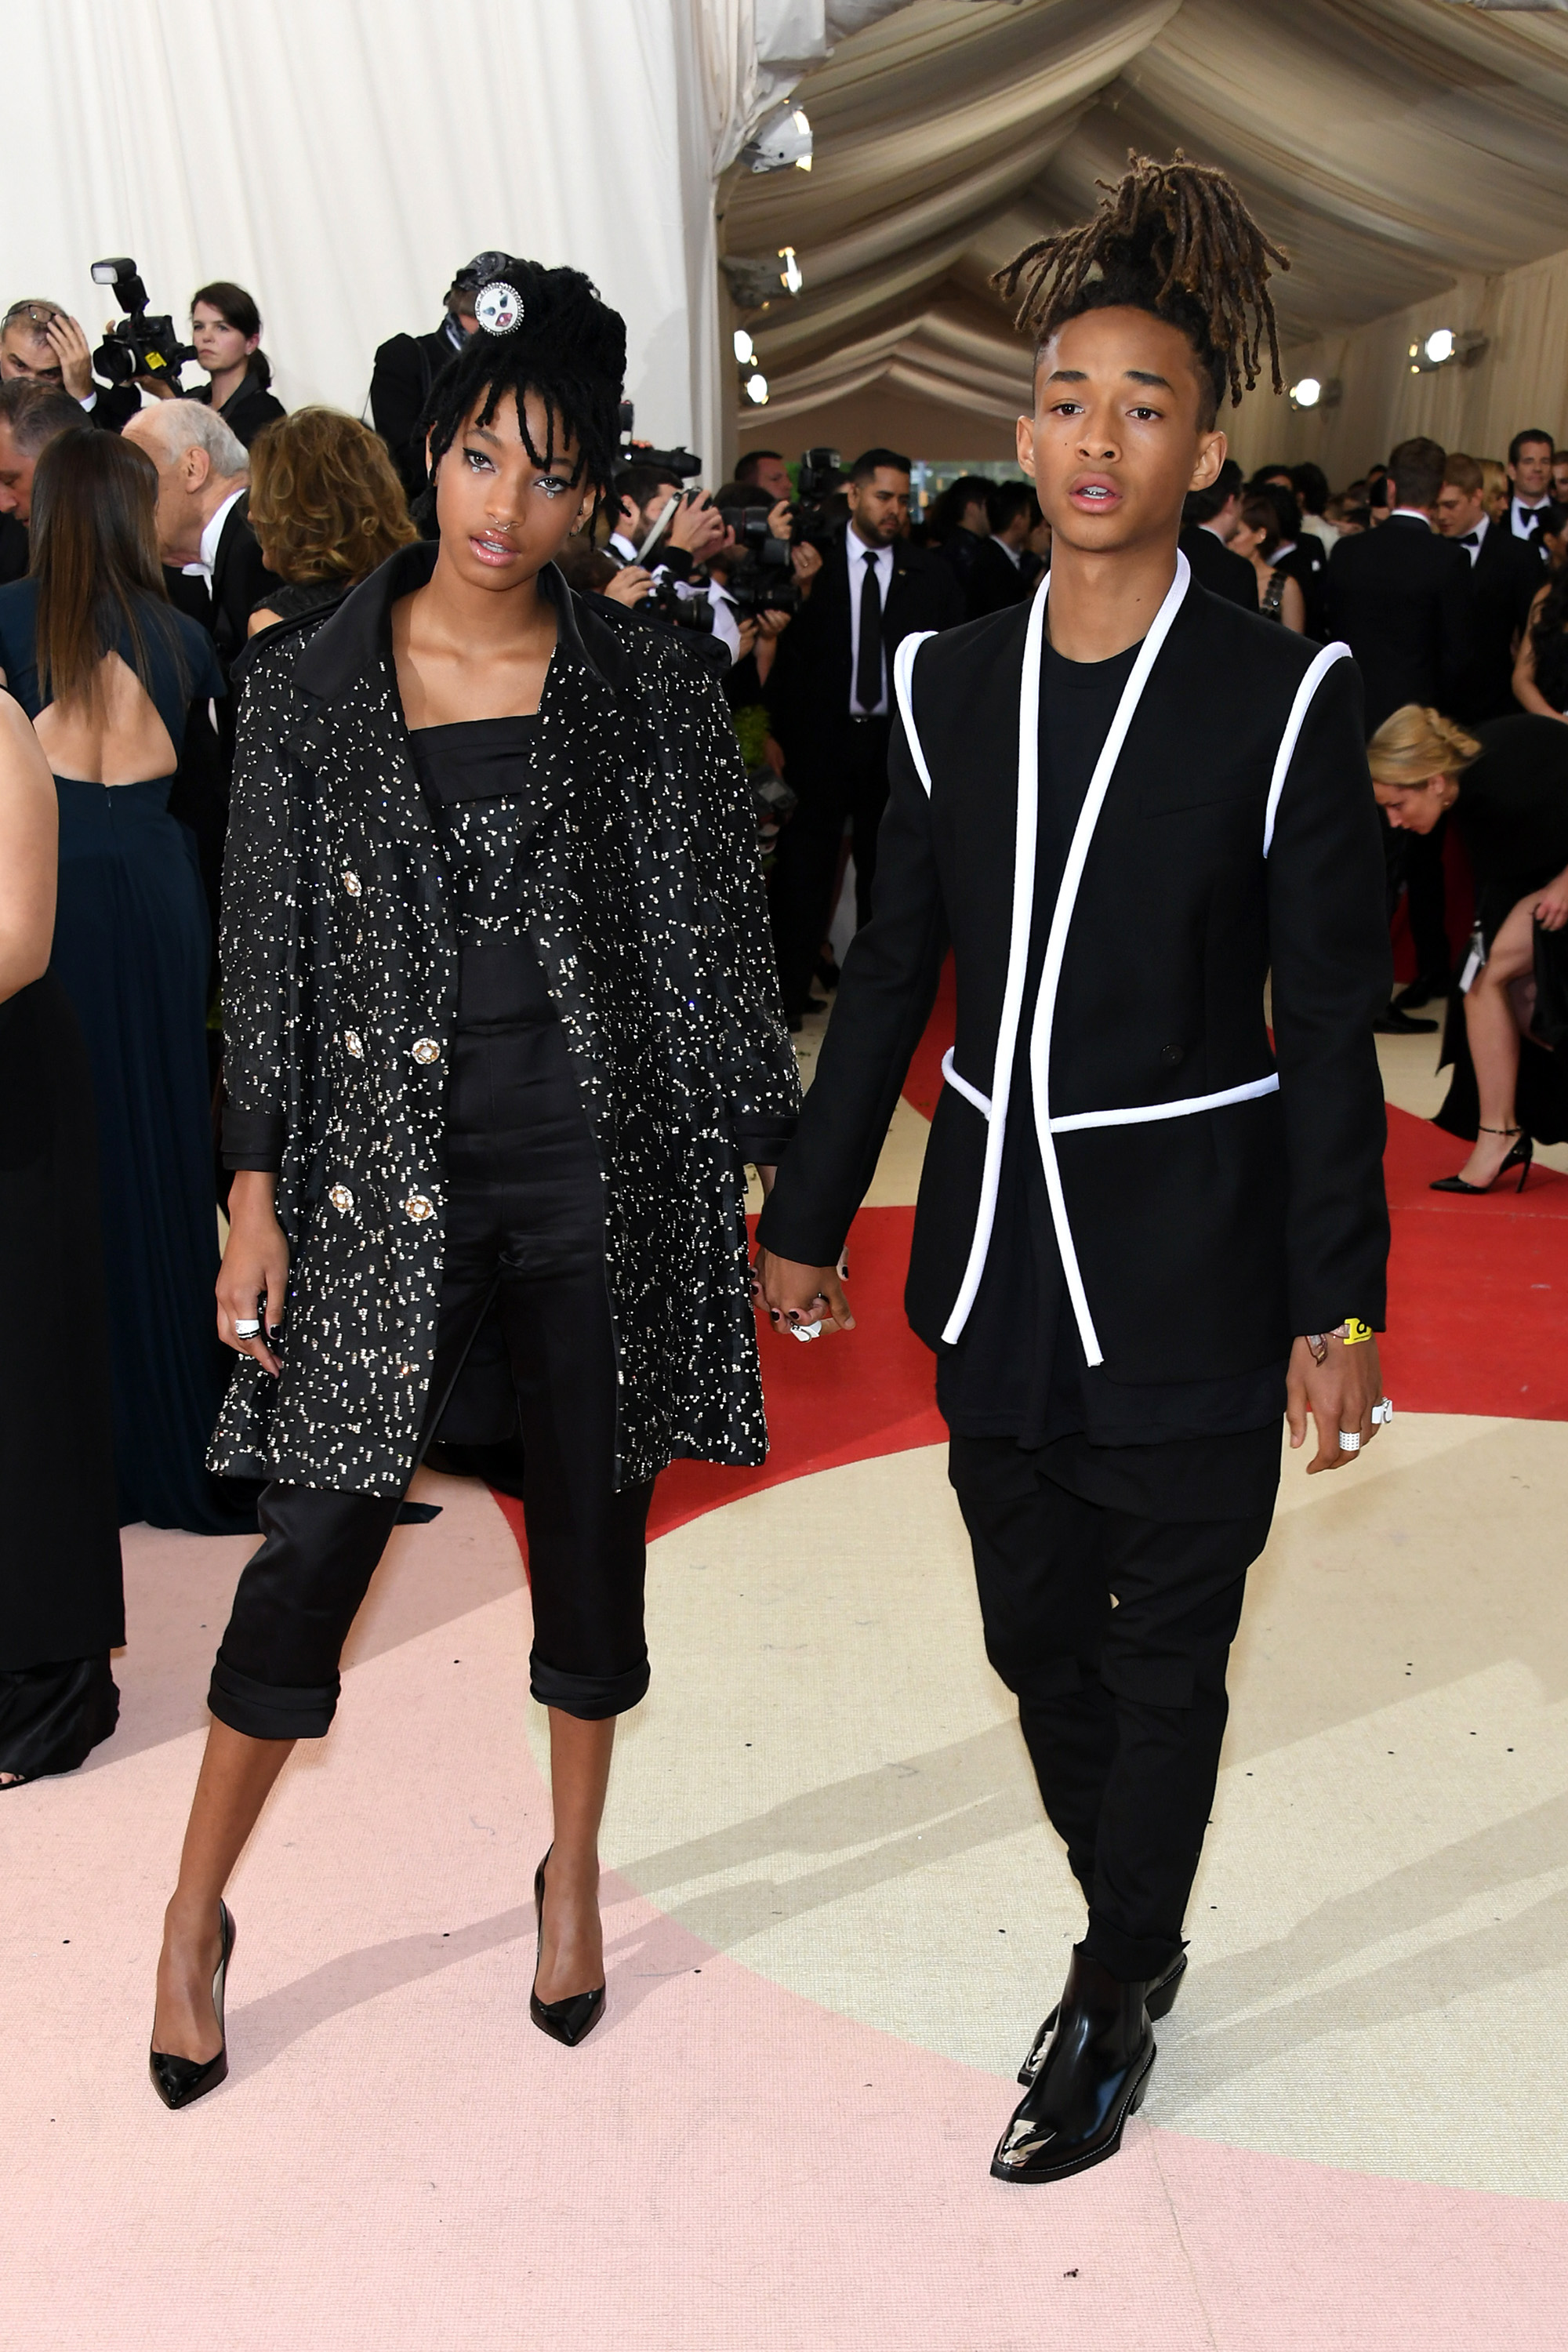 Willow and Jaden Smith attend  Manus x Machina: Fashion In An Age Of Technology  Costume Institute Gala at Metropolitan Museum of Art on May 2, 2016 in New York City.